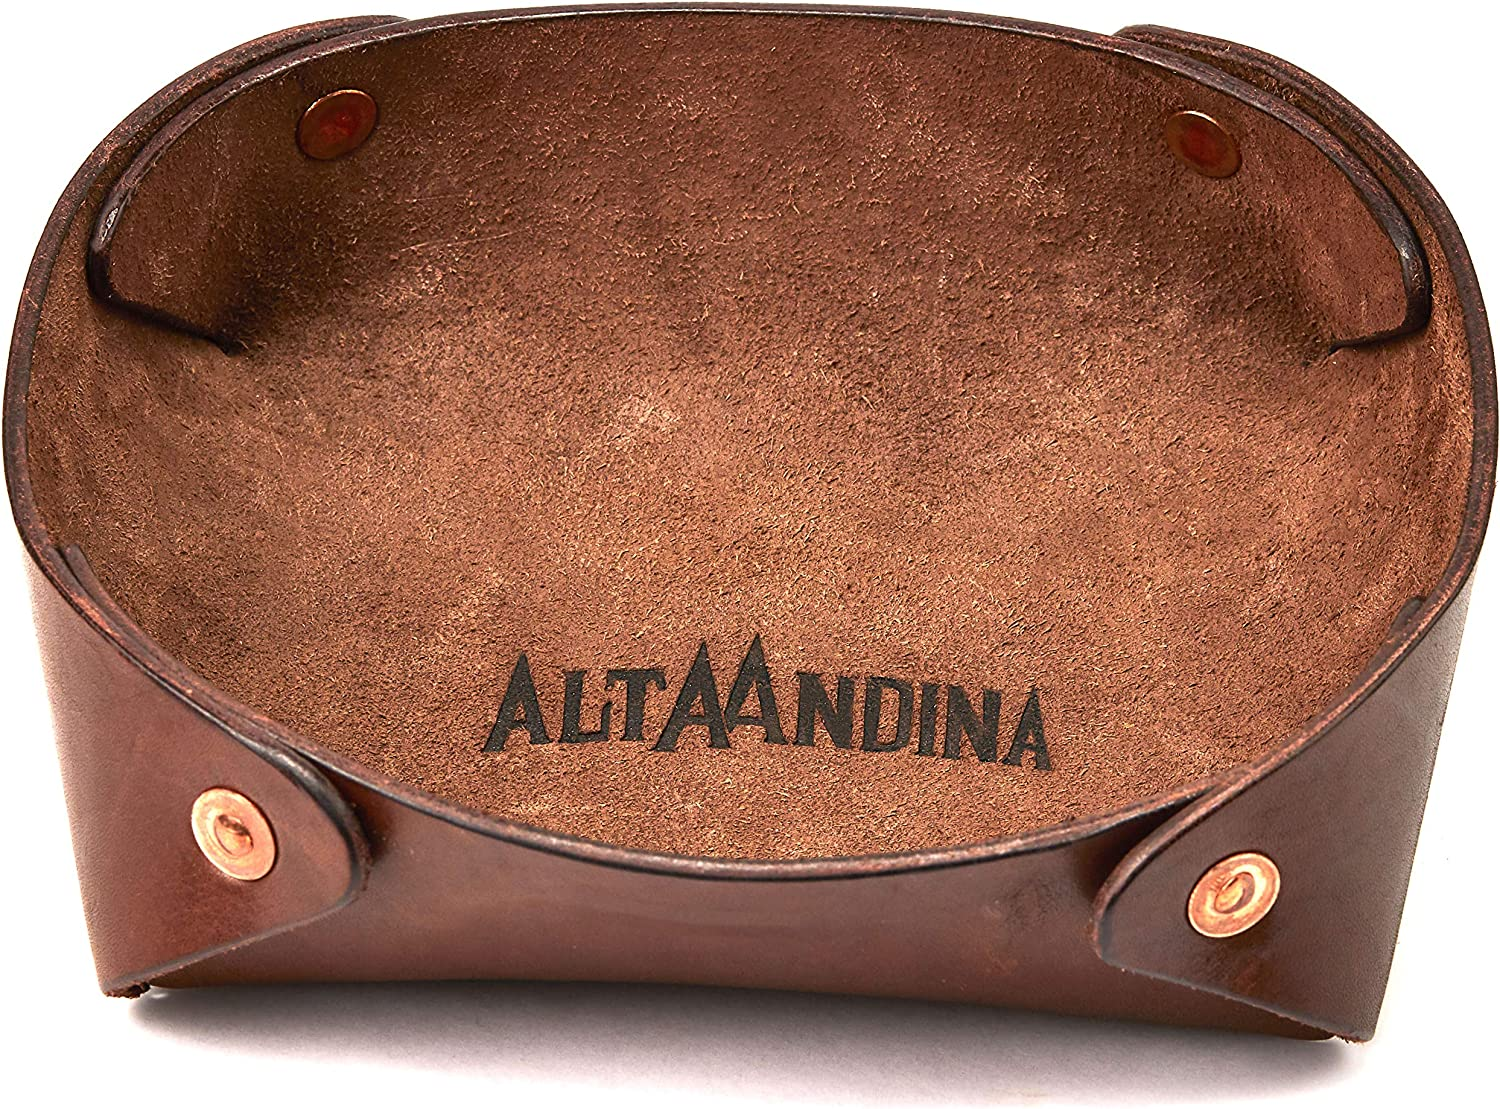 Alta Andina Large Leather Valet Tray Catchall Organizer Brown Caf